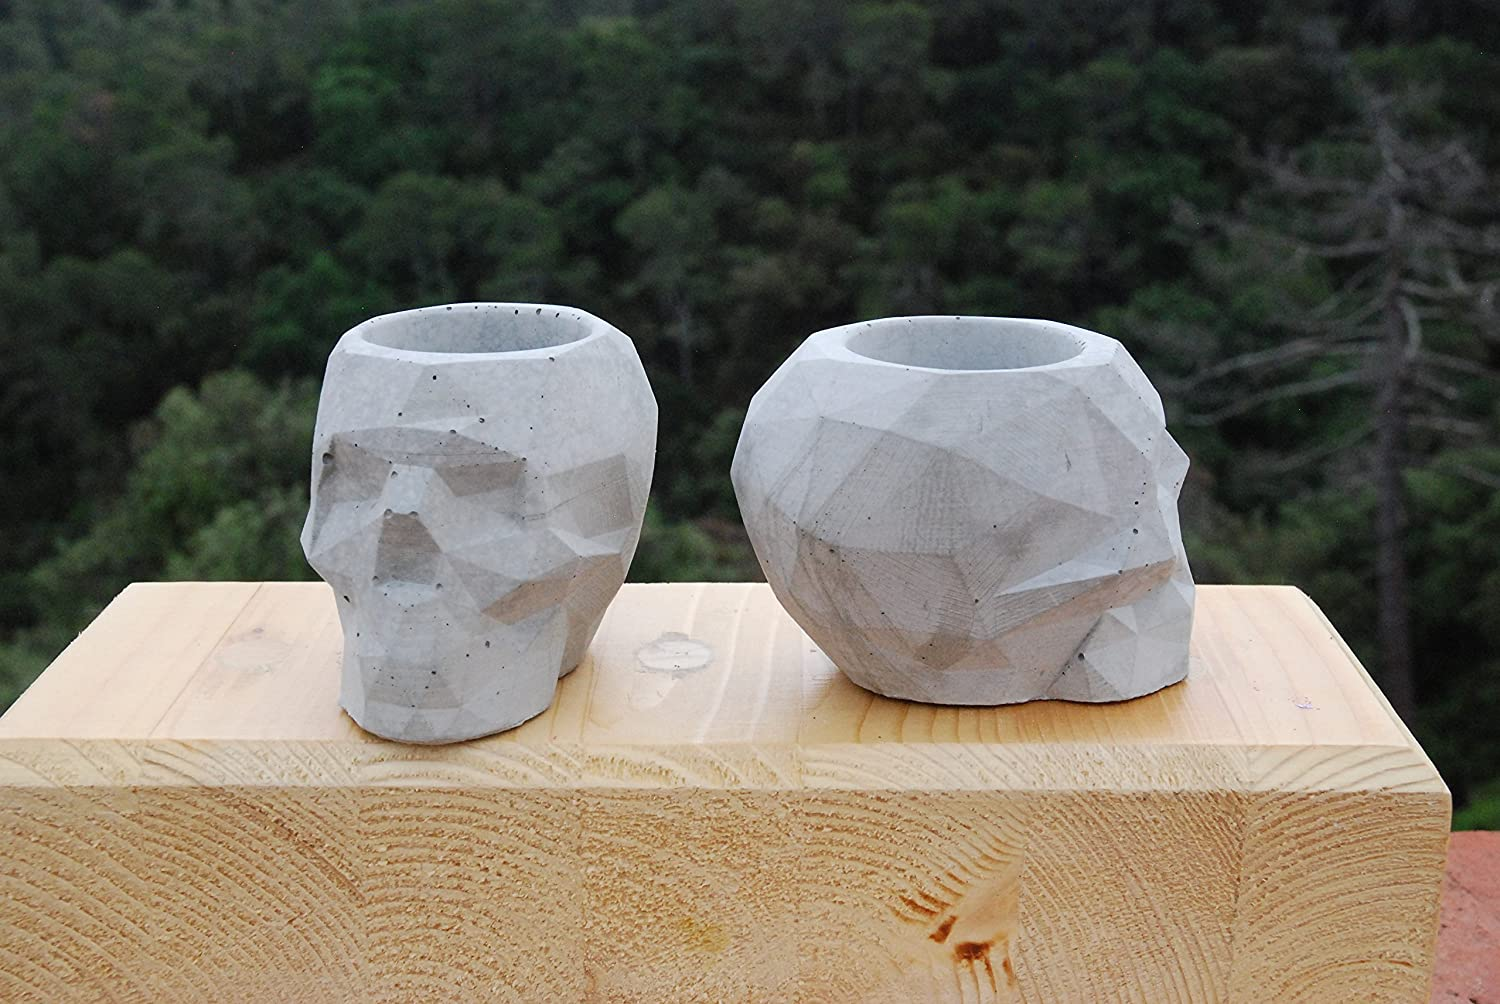 2 Pack de Porta maceta de concreto/Geometry Concret Planter Pot. NO INCLUYE PLANTA.: Amazon.es: Handmade